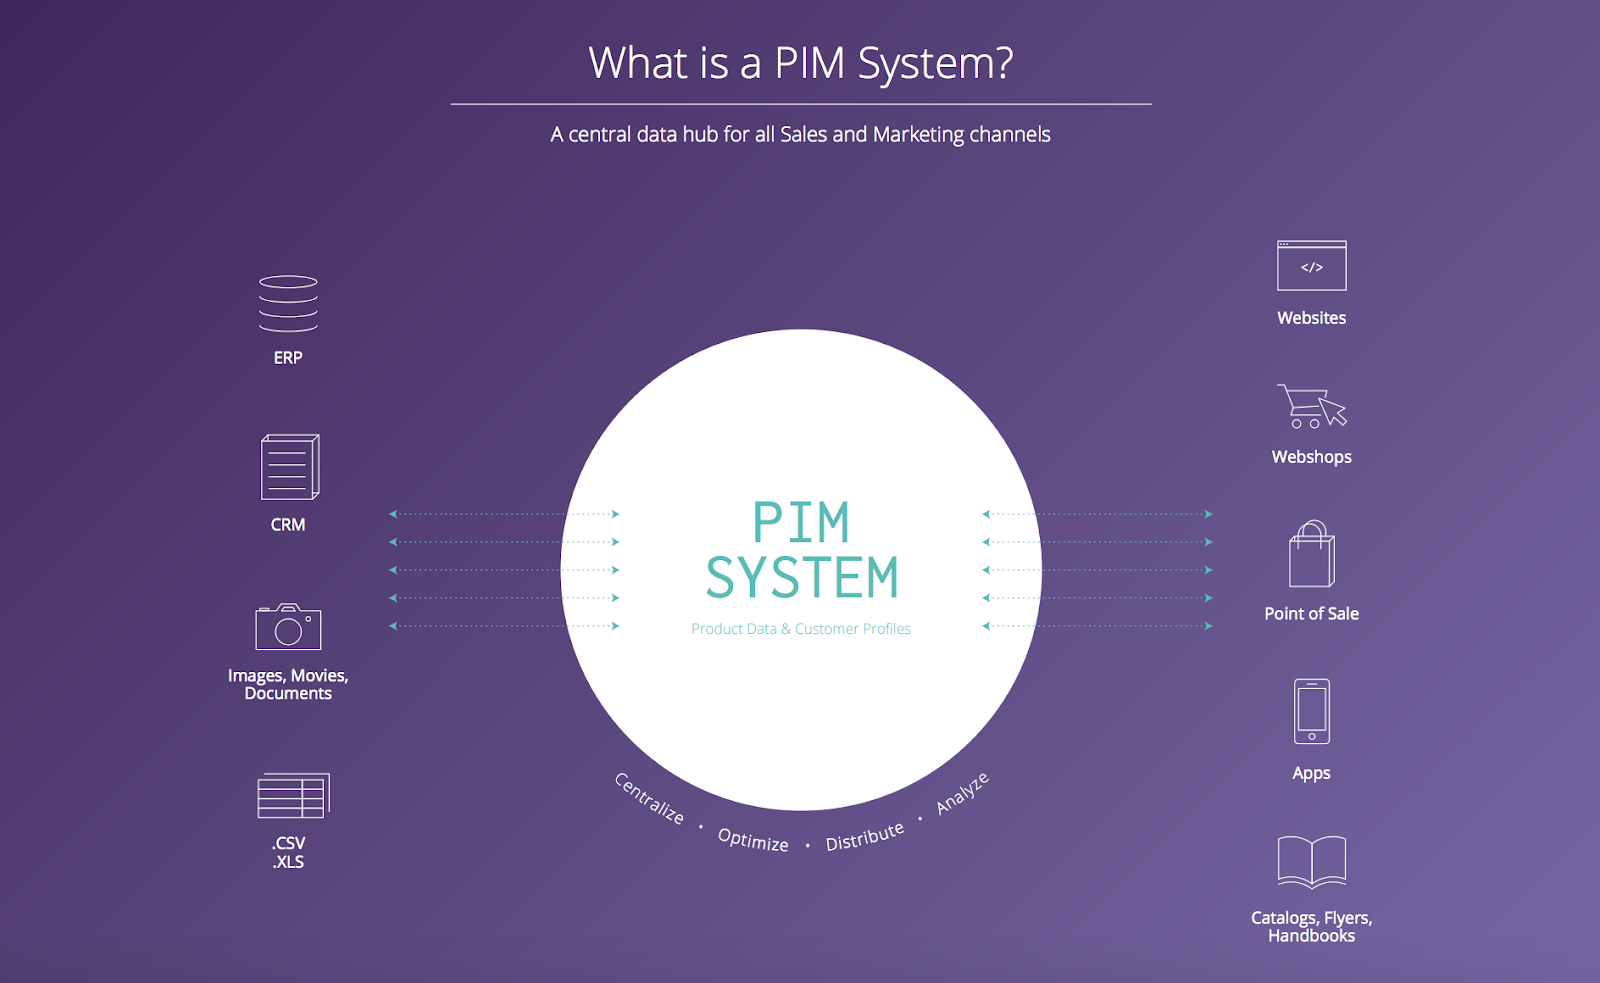 What is a PIM